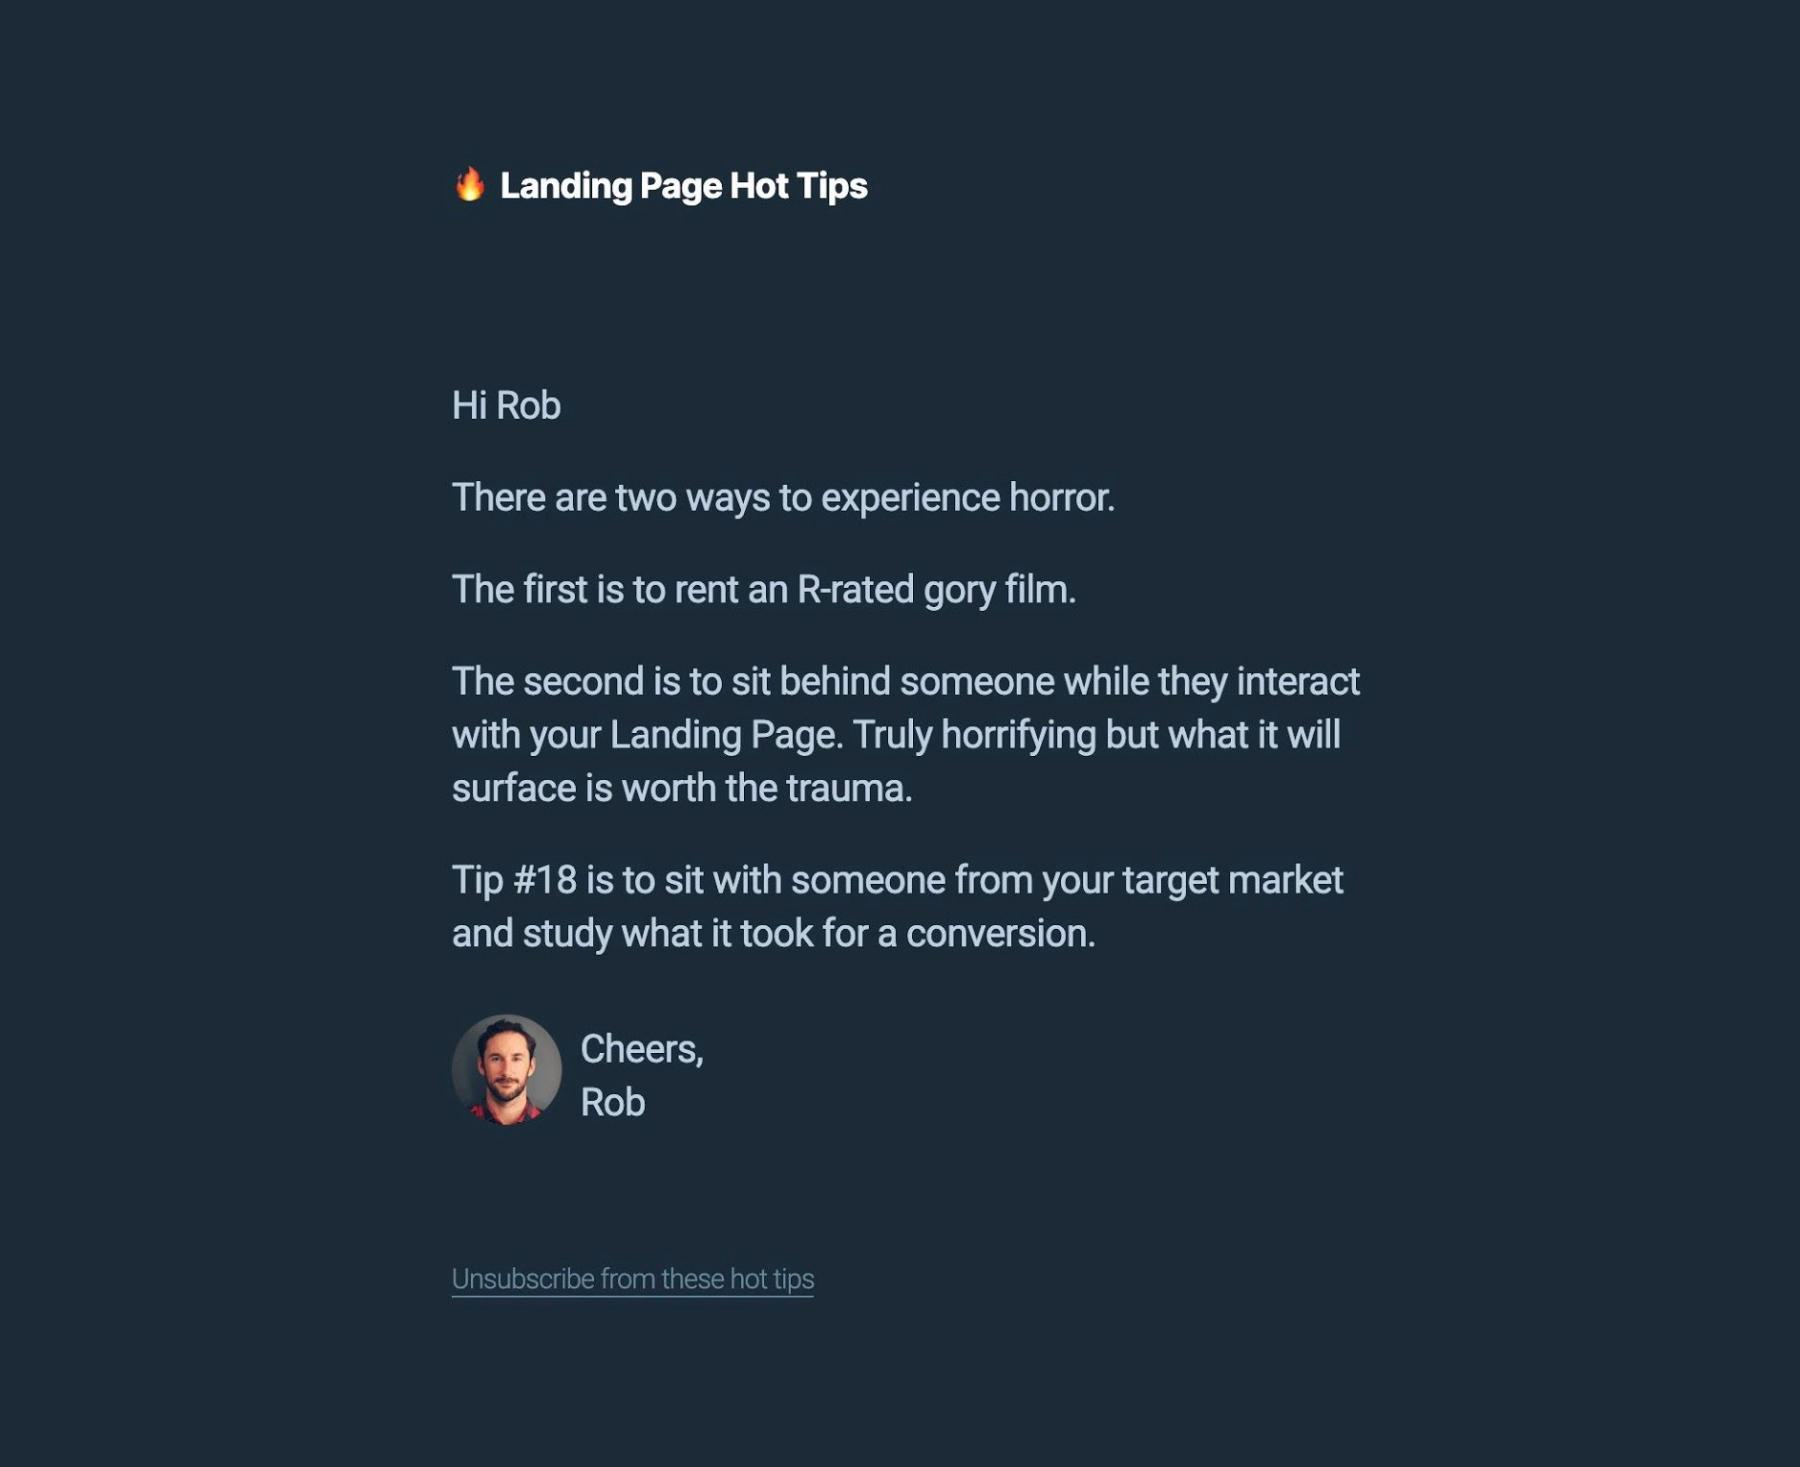 Rob Hope Landing Page Hot Tips Growth Hack #1